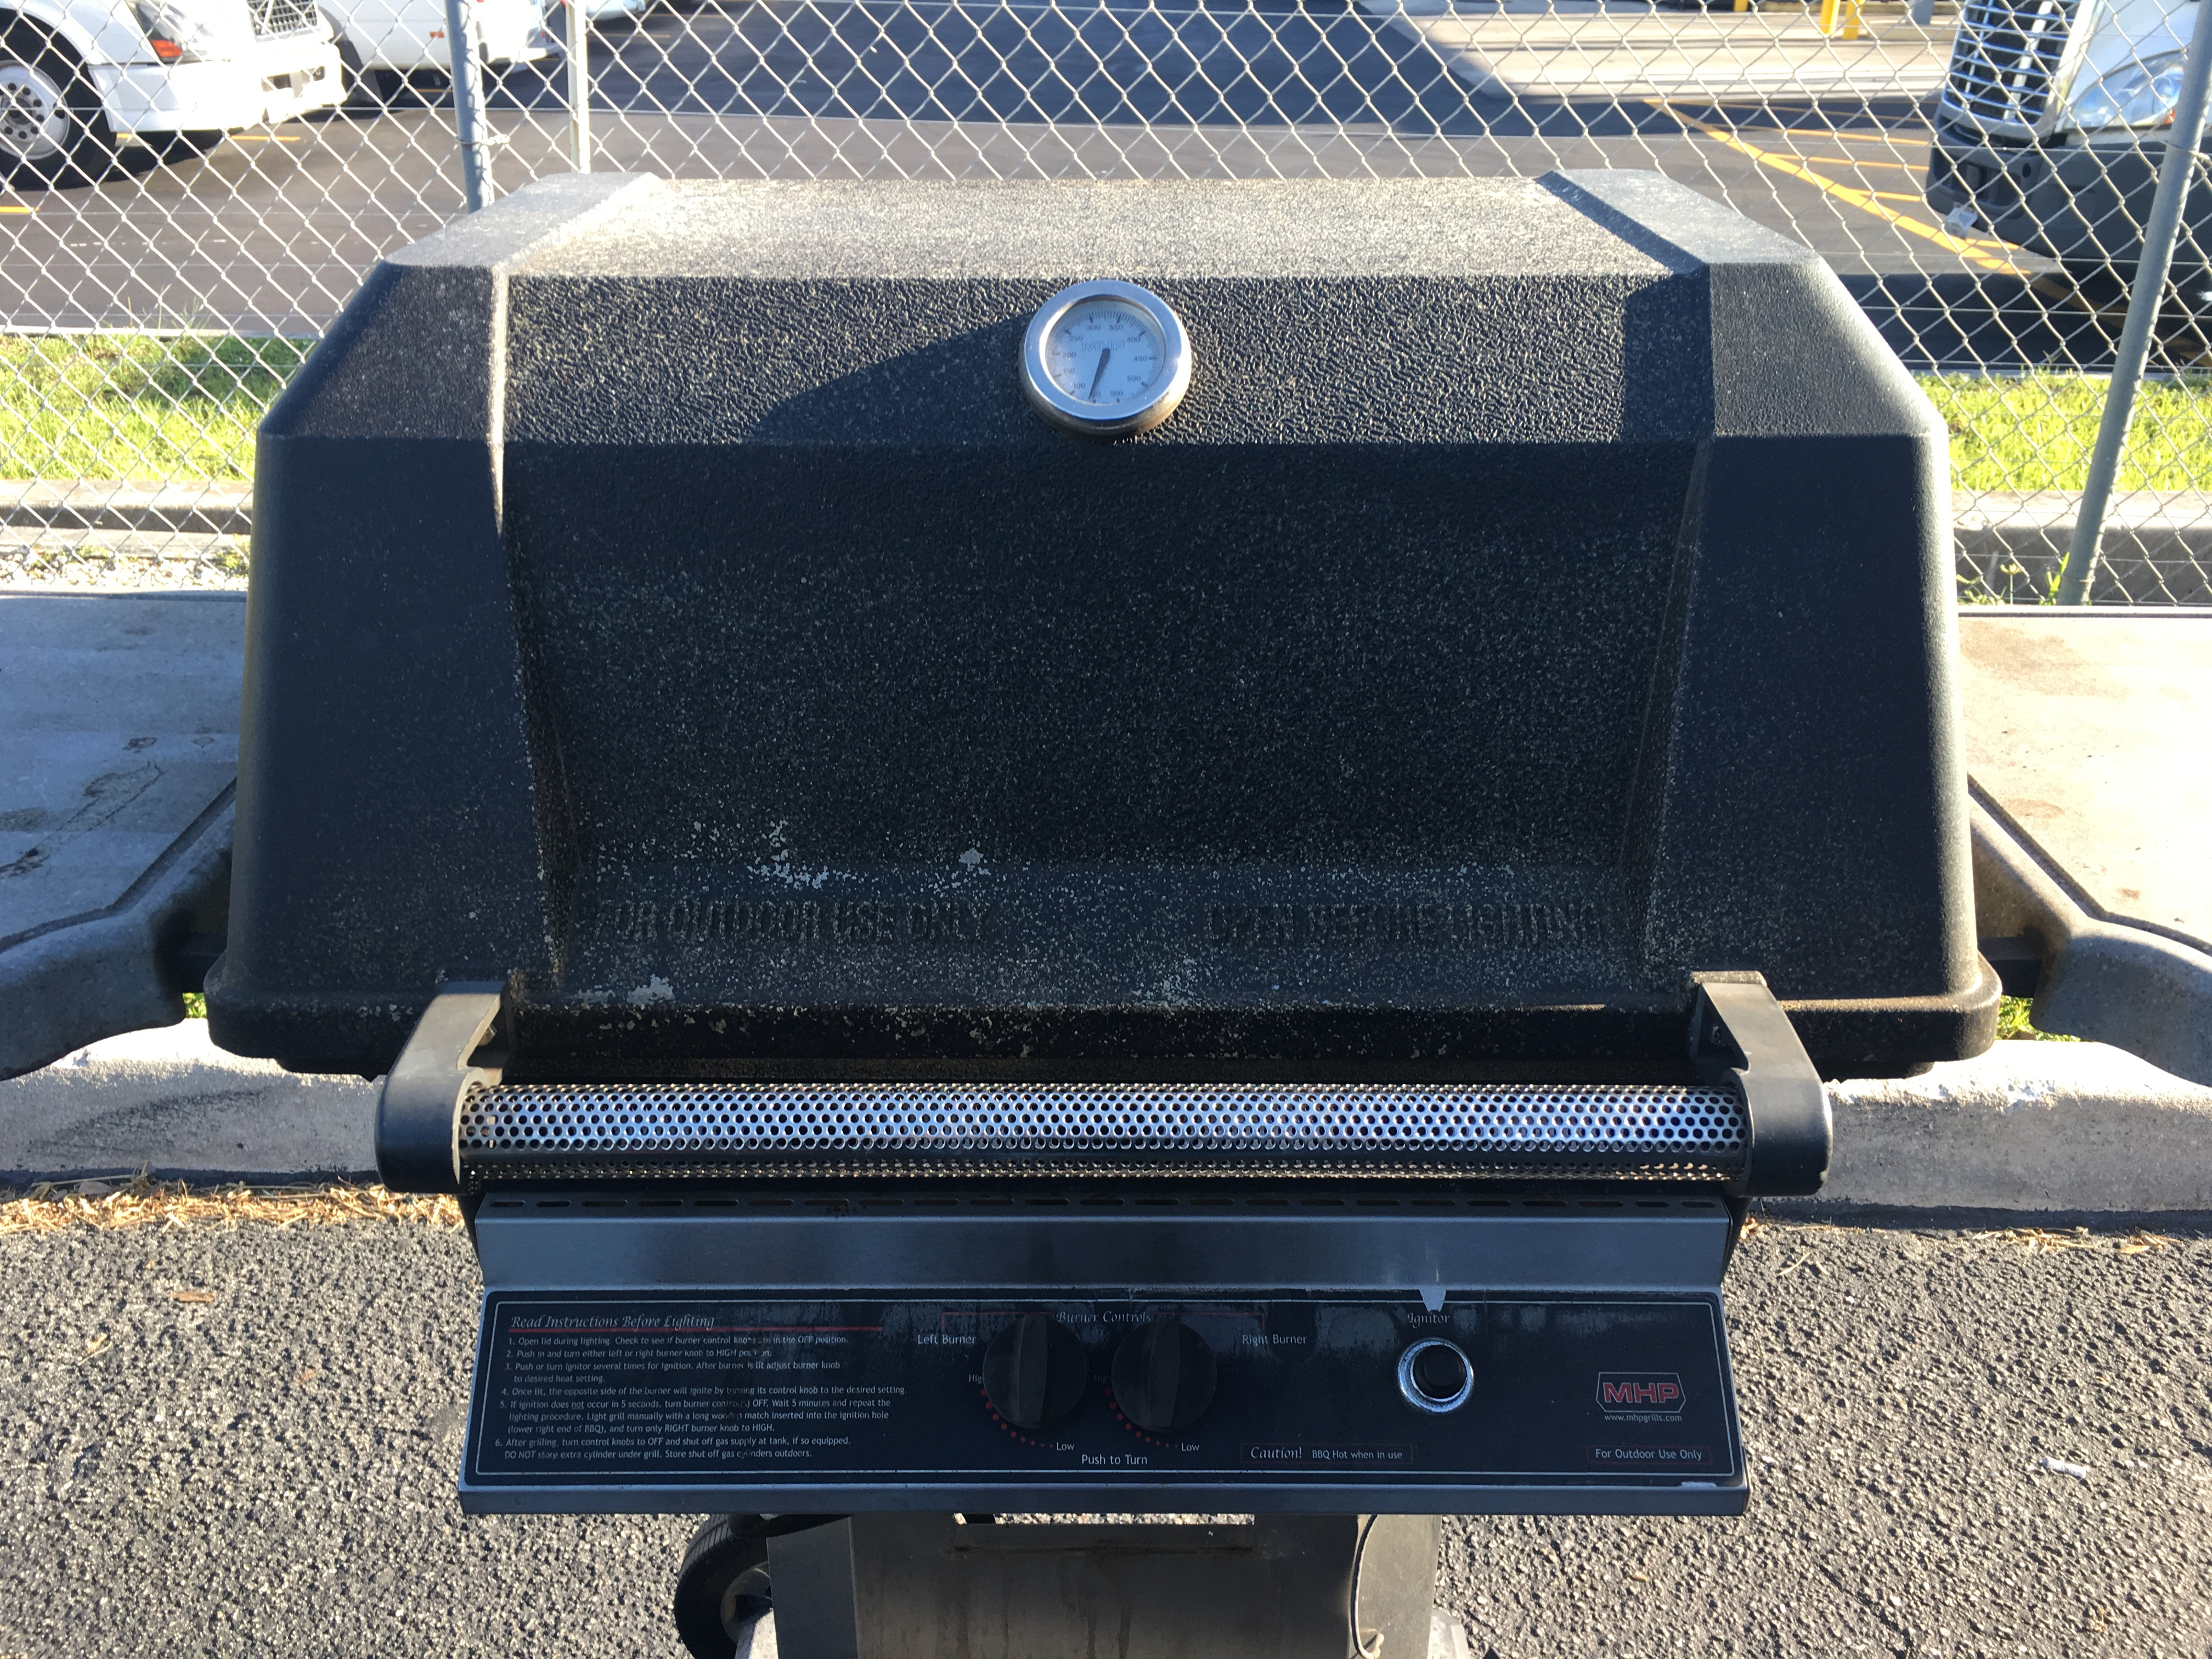 How to (Properly!) Clean a Gas Grill - The BBQ Depot